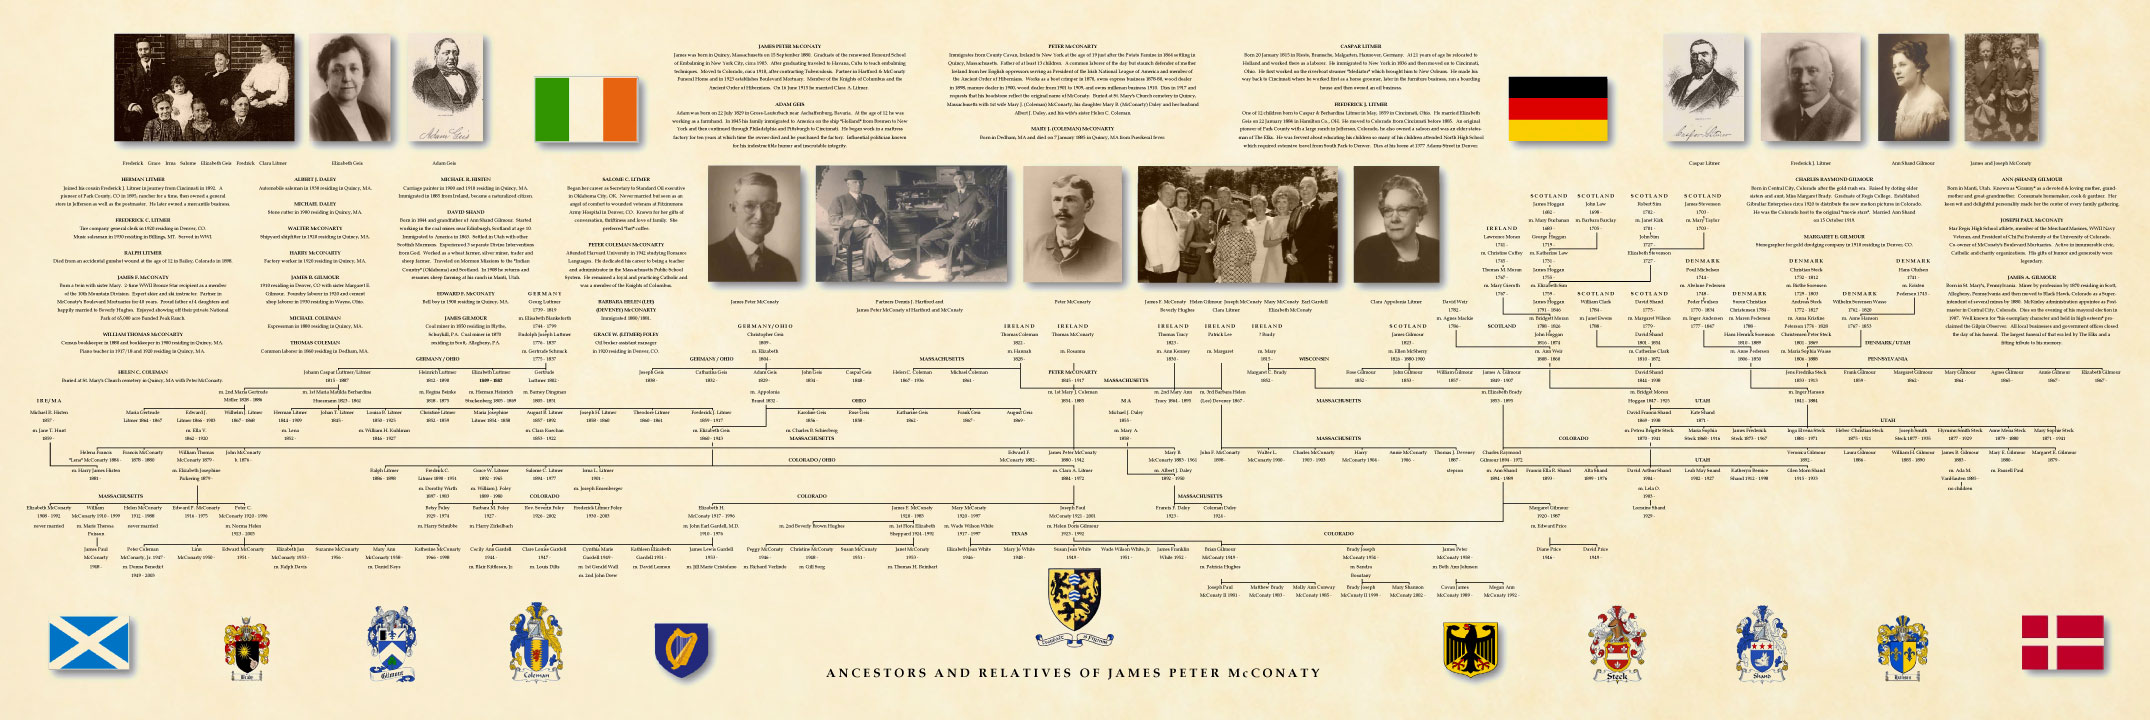 Timelines in Genealogy Research | Burlington Chamber of Commerce